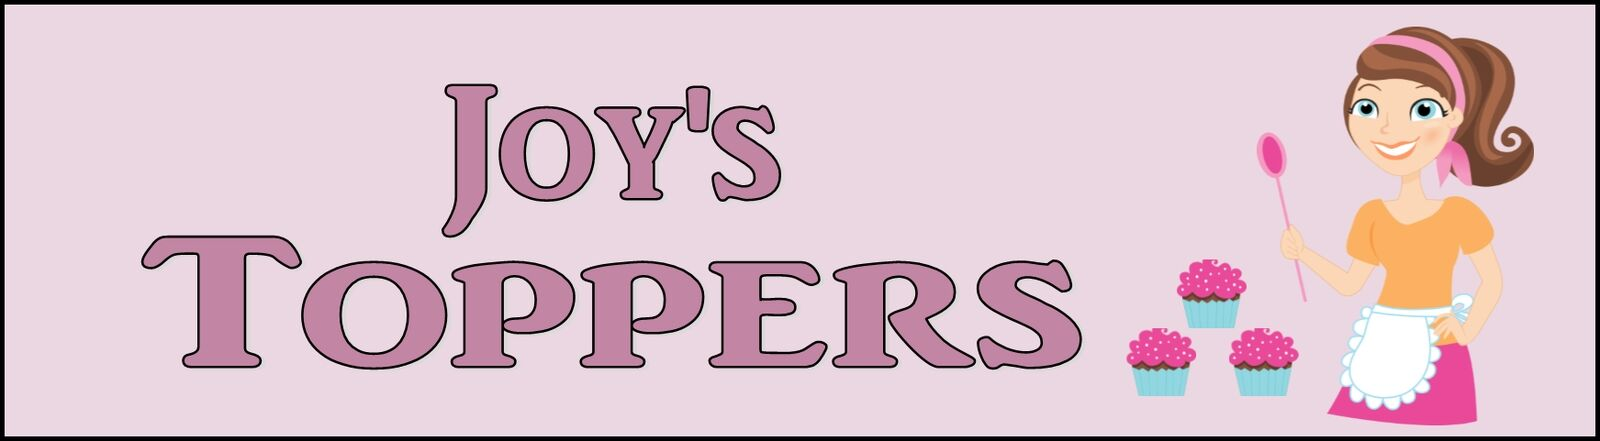 Joys Toppers